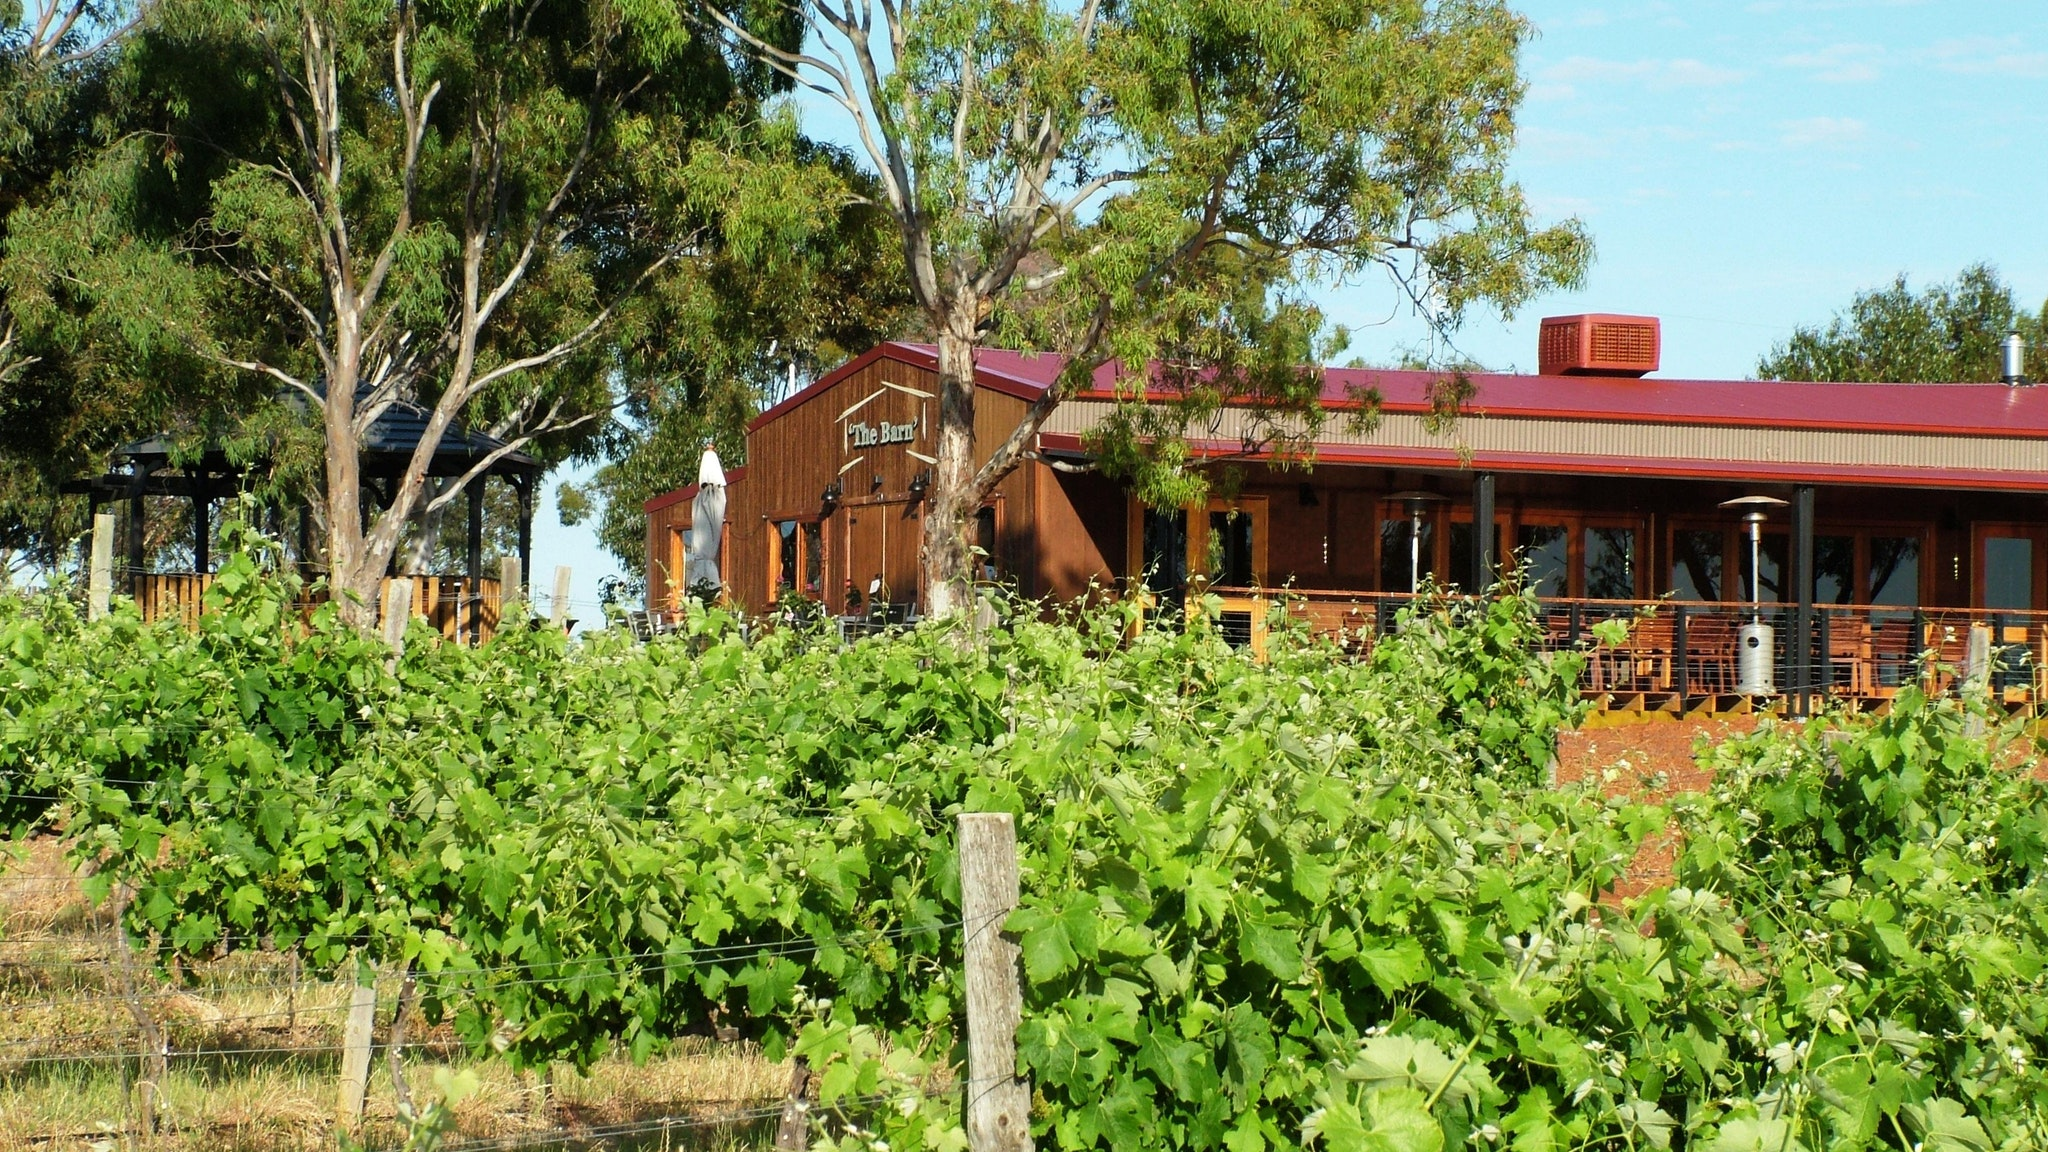 Barangaroo Boutique Wines - The Barn cellar door and function centre